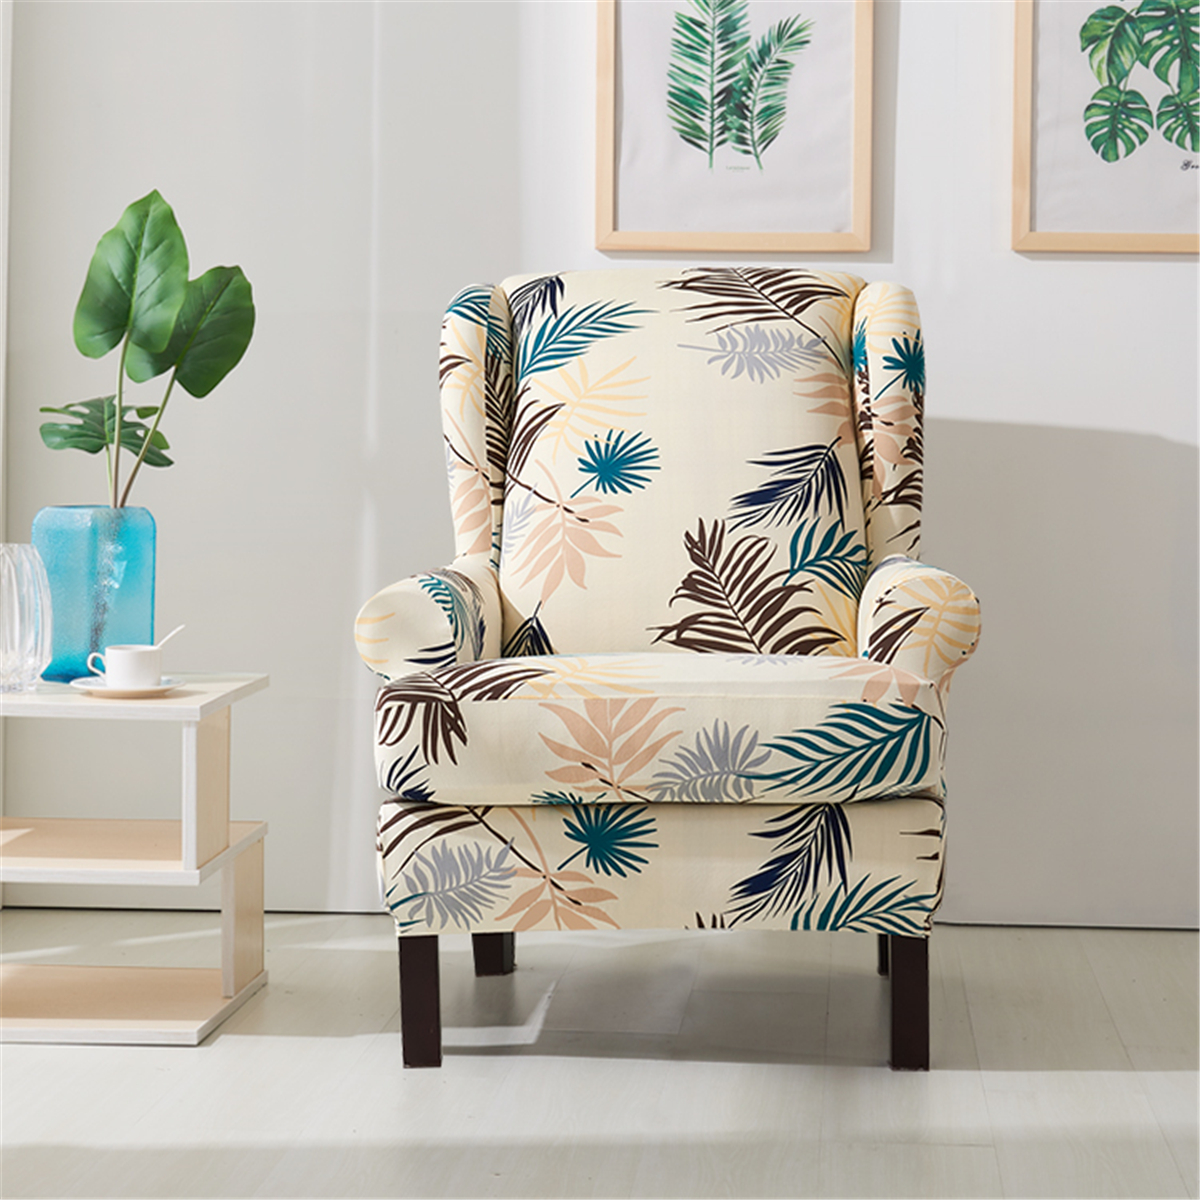 Fabulous Details About New Printed Armchair Wingback Slipcover Wing Chair Cover Stretch Home Protector Gmtry Best Dining Table And Chair Ideas Images Gmtryco